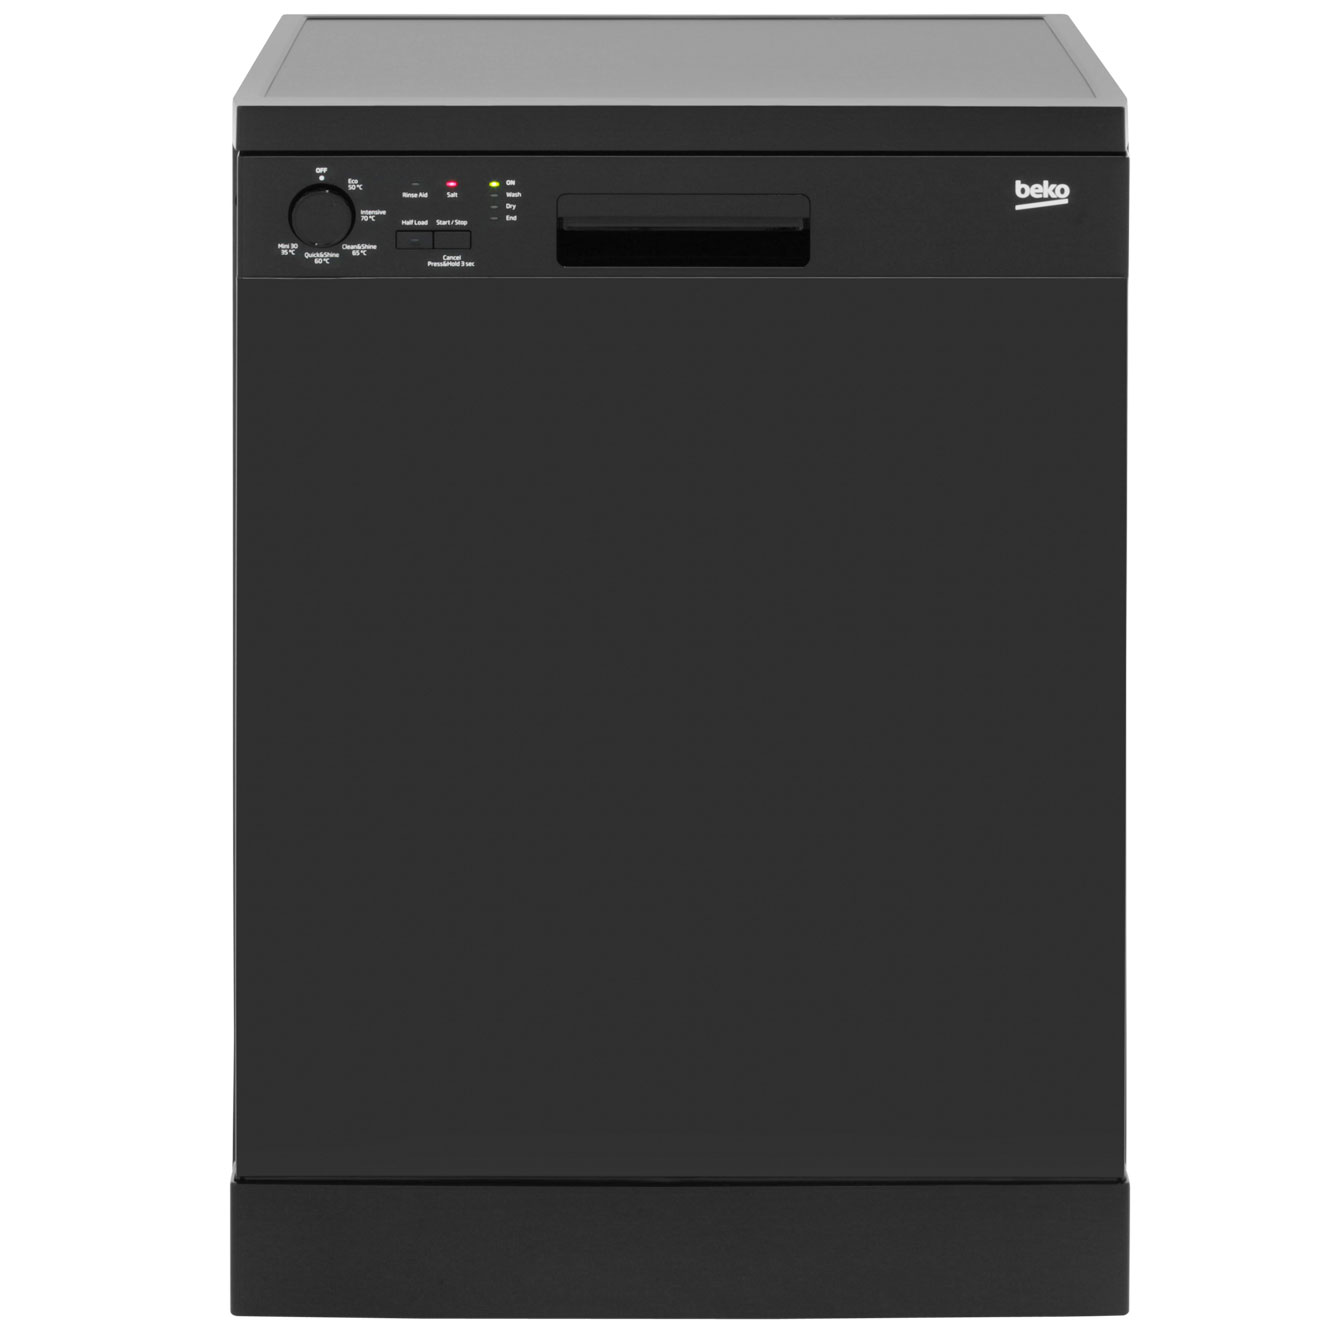 Beko DFC05R10B Standard Dishwasher - Black